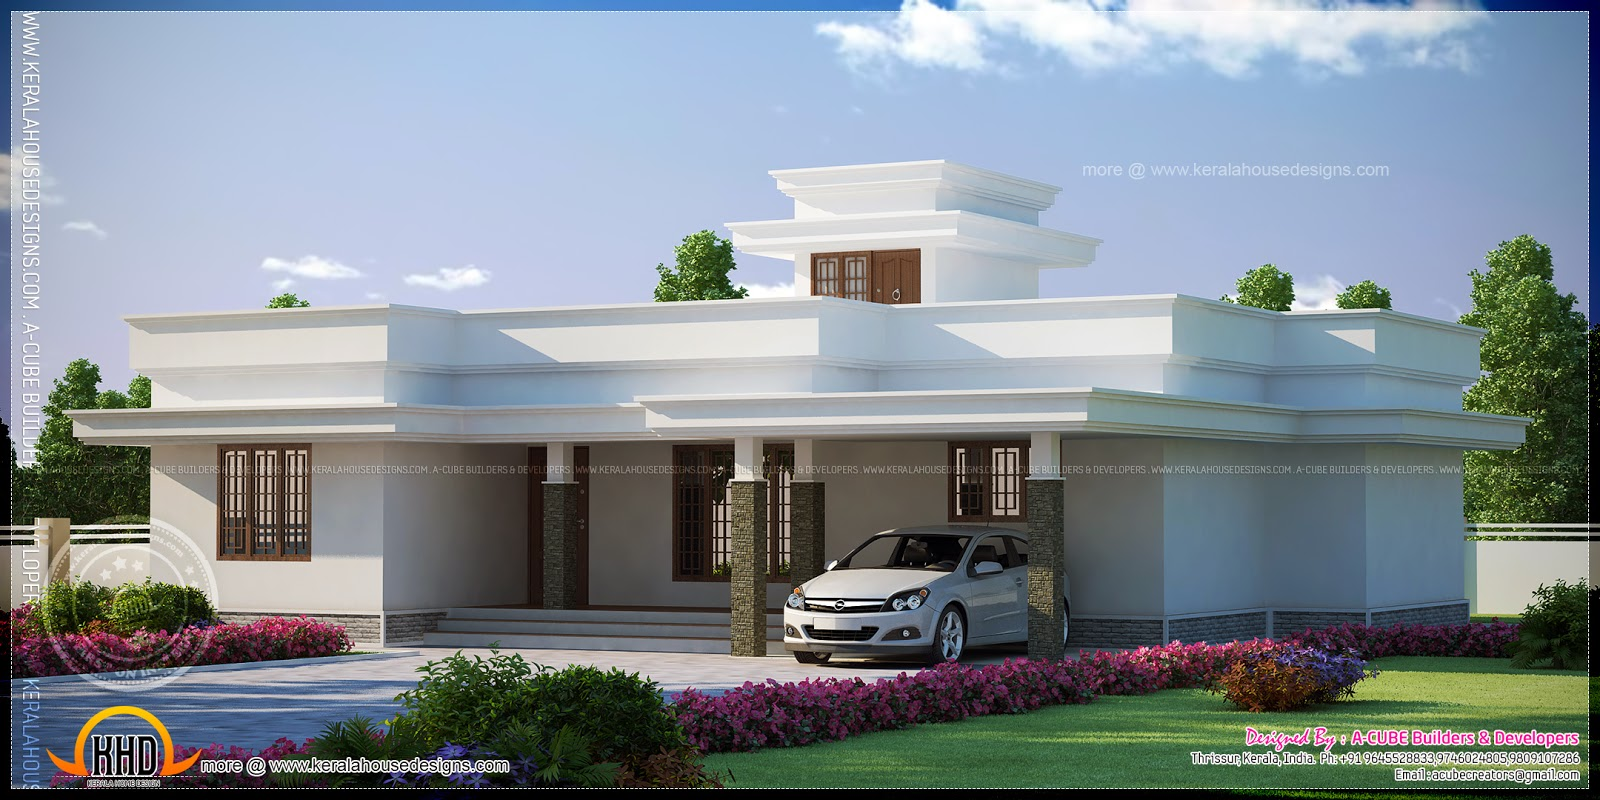 Contemporary flat roof single storied house model kerala for Apartment roof design